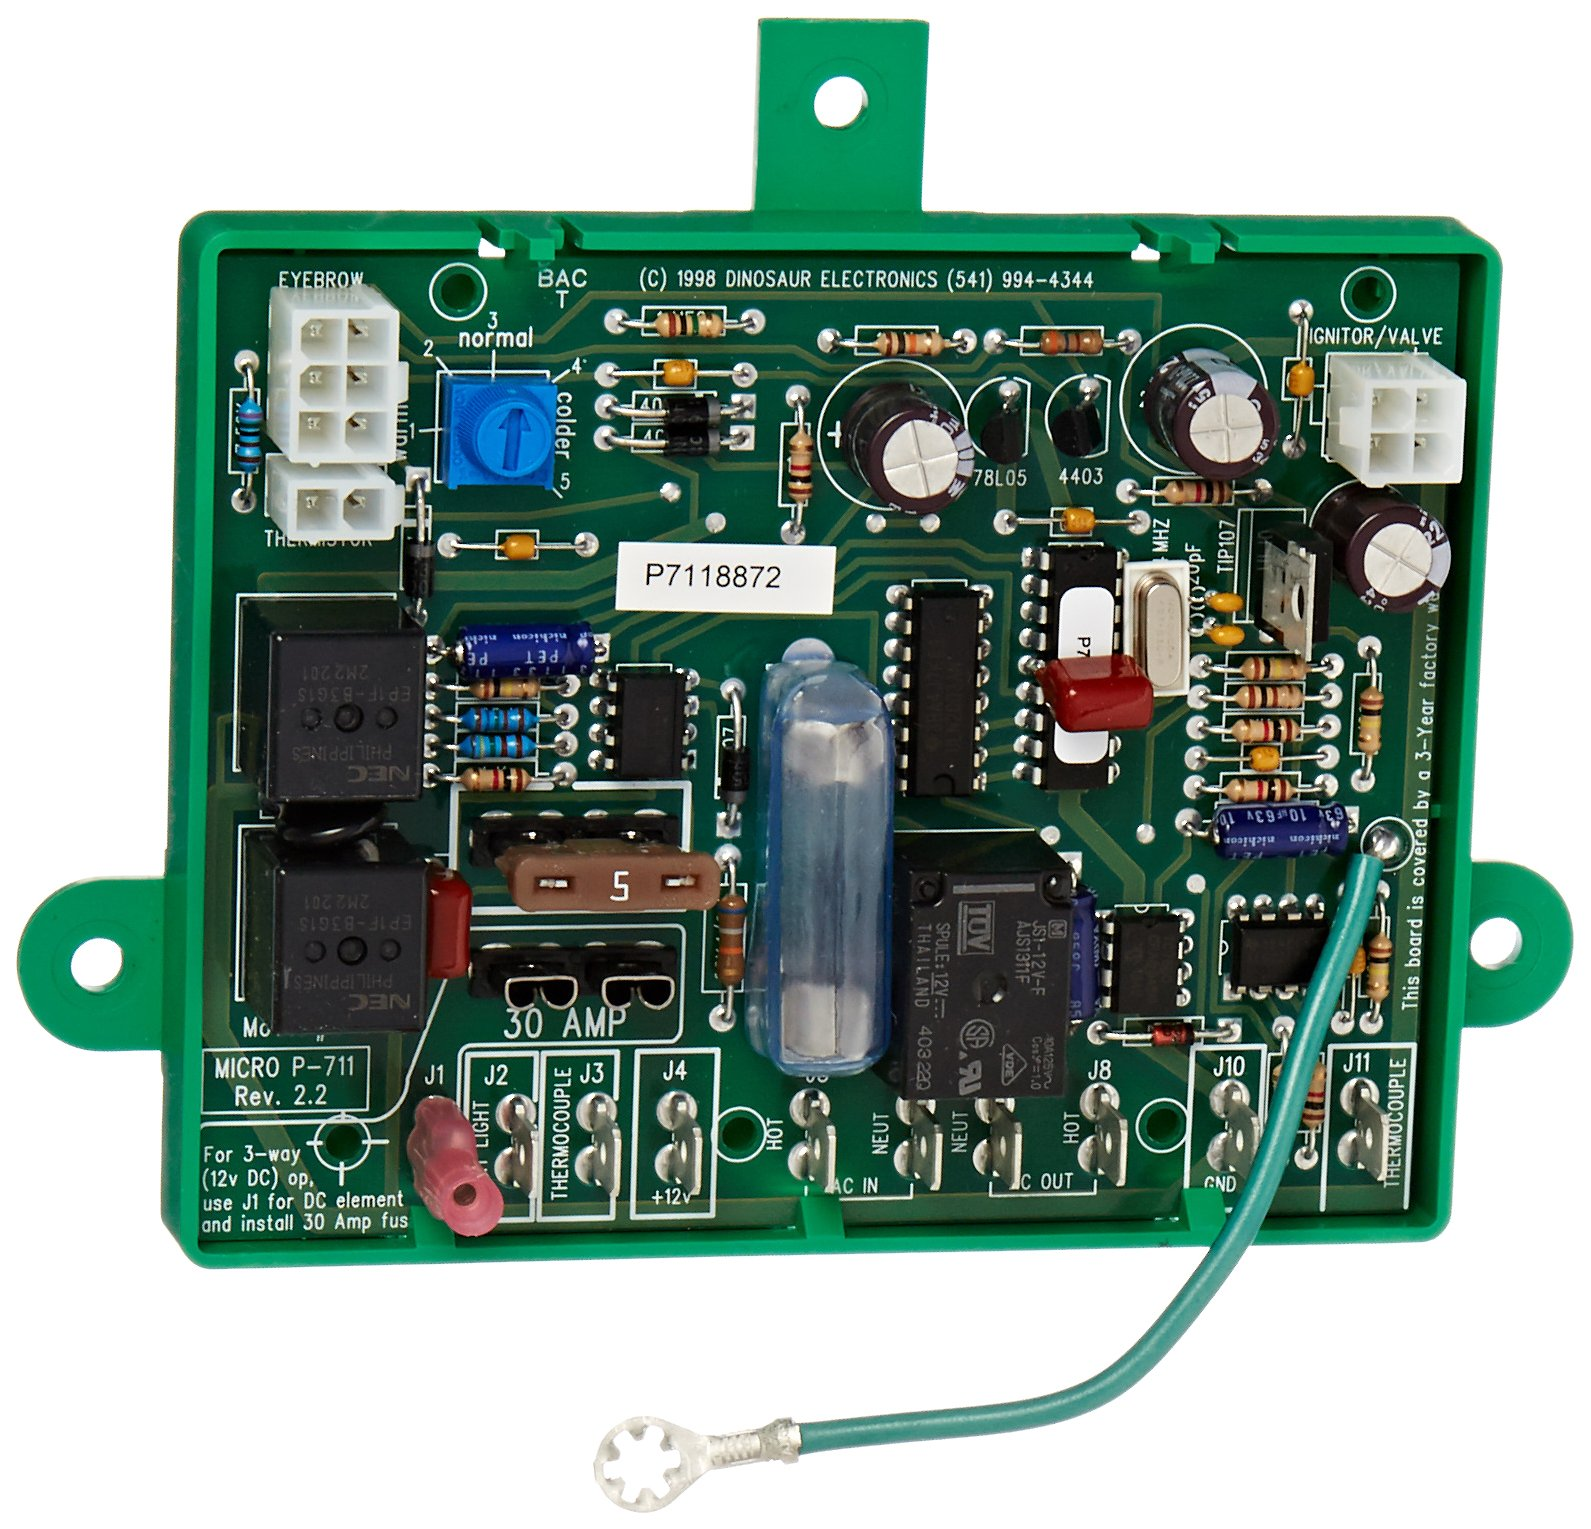 Amazon.com: Dinosaur Electronics (MICRO P-711 Domestic Control Board:  Automotive